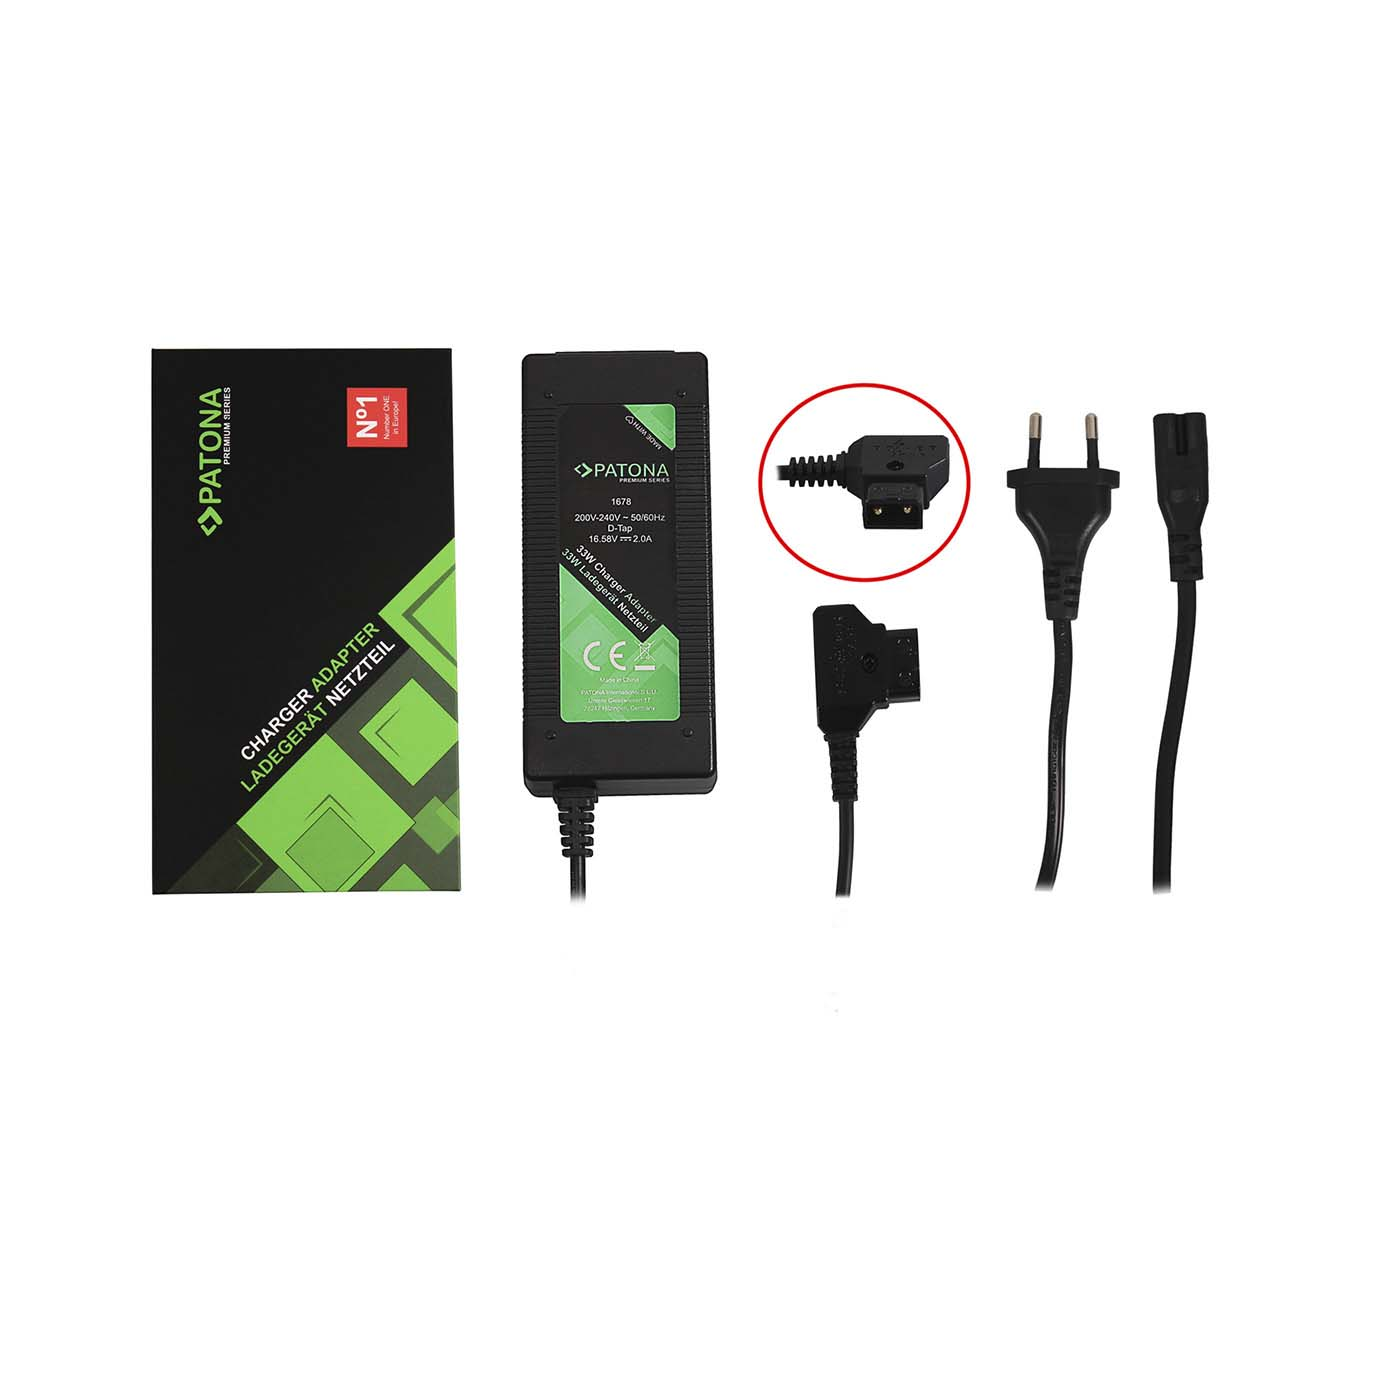 Vlock battery charger_pveshop_n